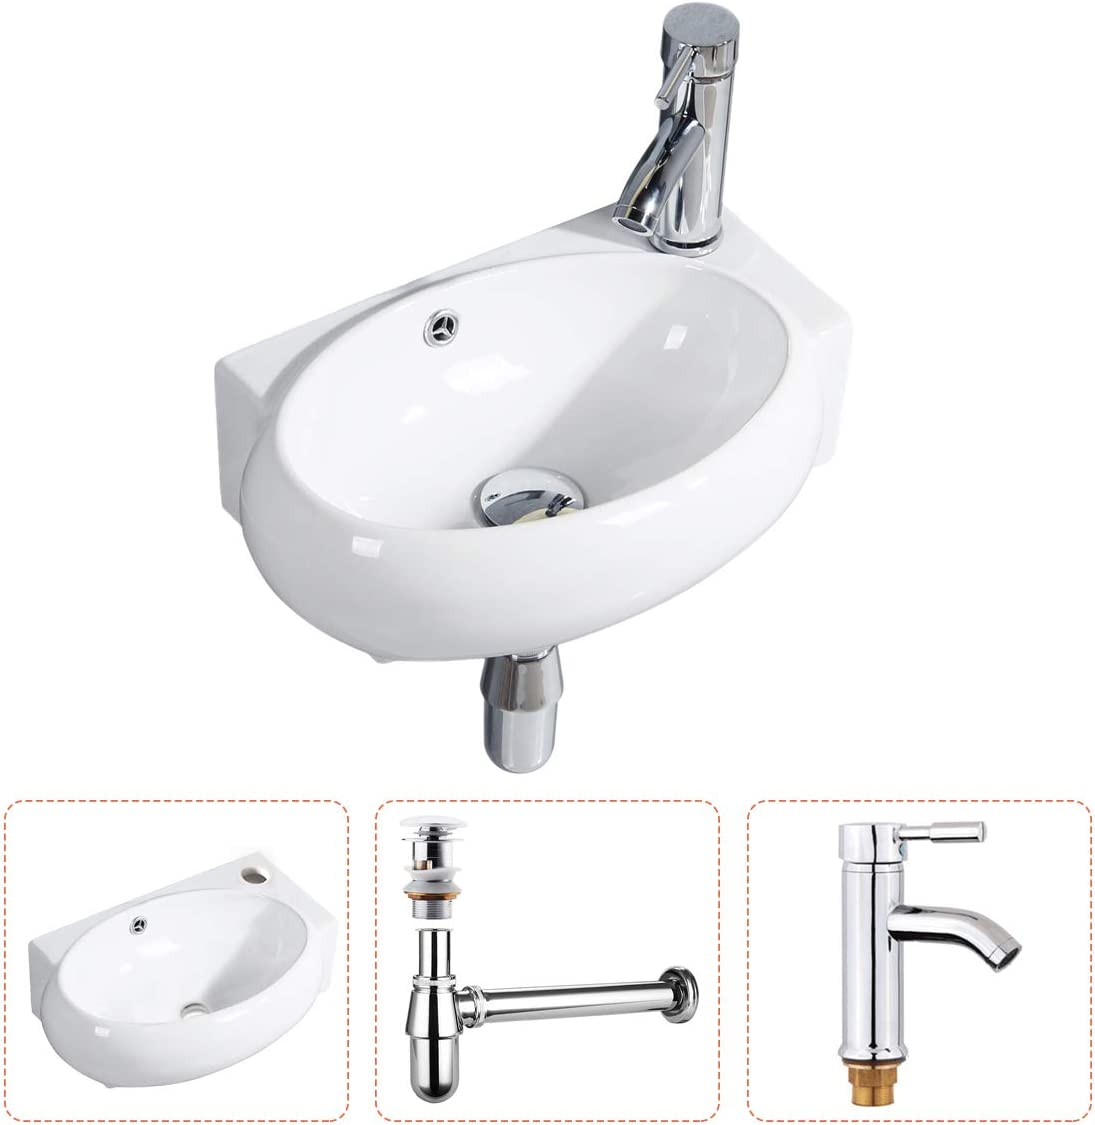 Gimify Bathroom Corner Sink Small Wall Mount Sink Oval Cloakroom Basin Mini Ceramic Modern In White With Overflow Pop Up Drain Faucet Included Amazon Com